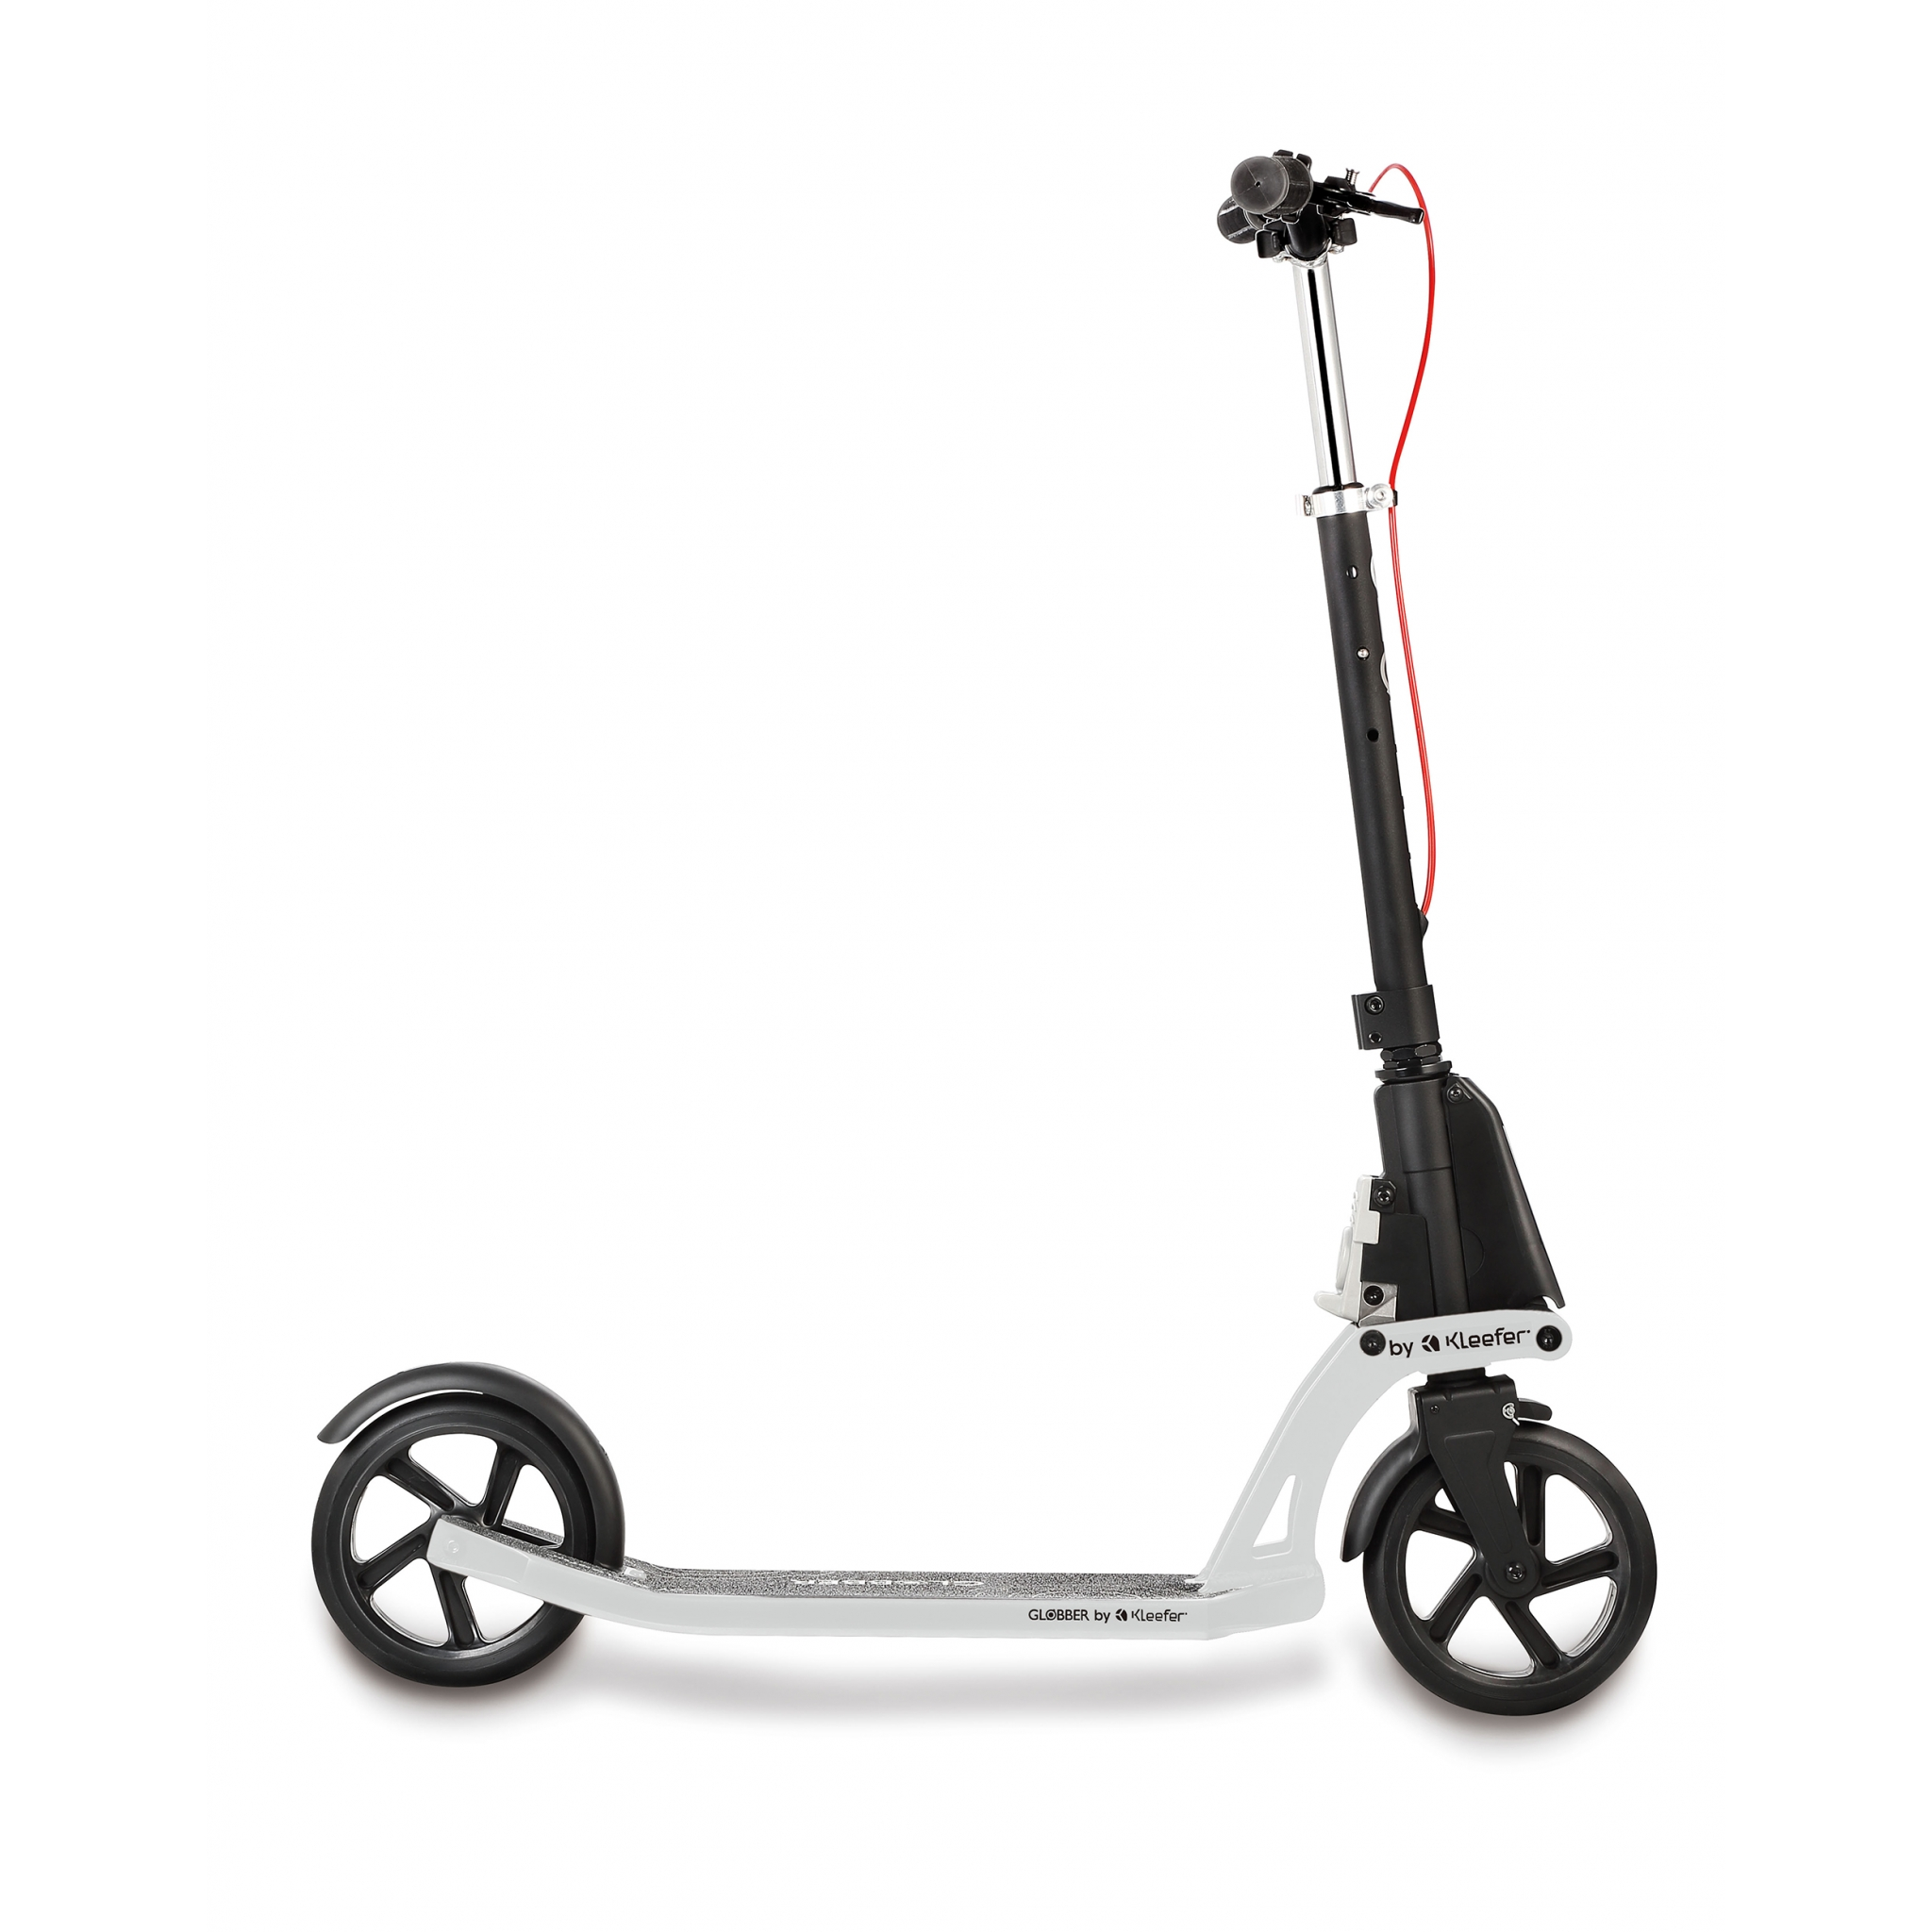 foldable scooter for adults with handbrake - Globber ONE K ACTIVE BR 1